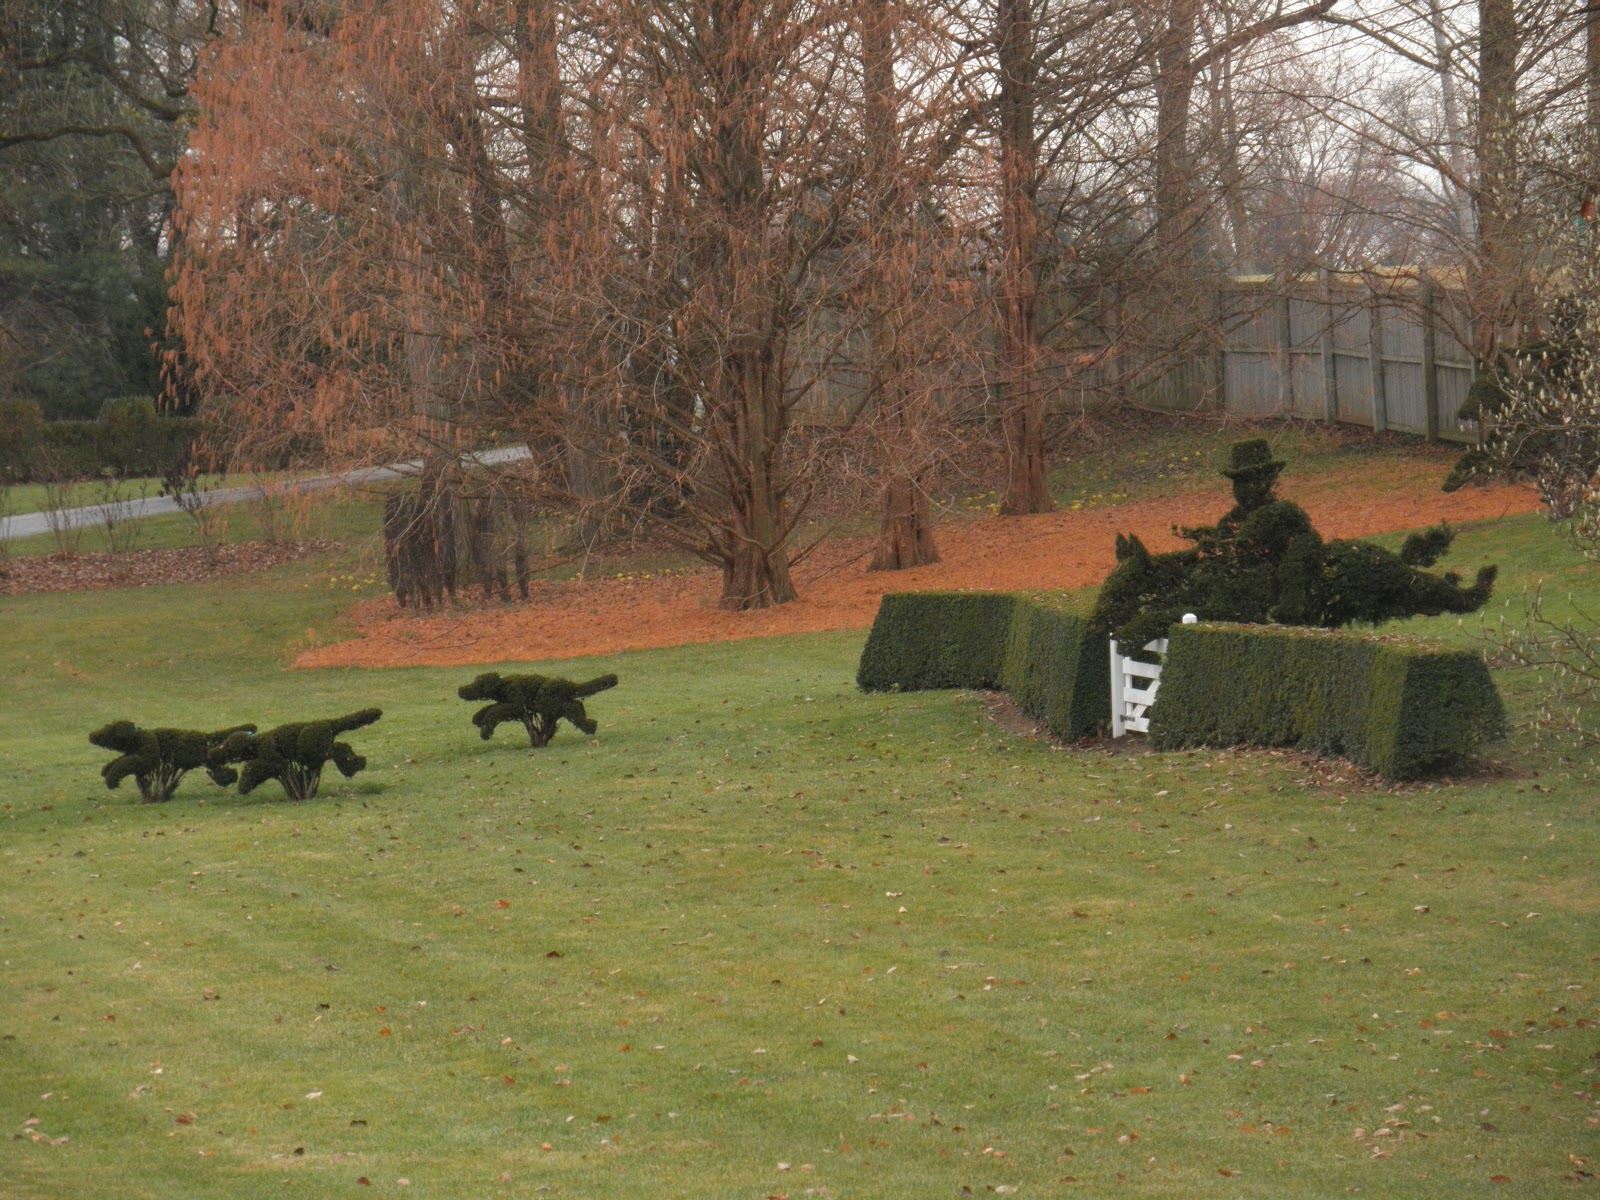 LIFE IN SKUNK HOLLOW: A Magical Christmas at Ladew Gardens